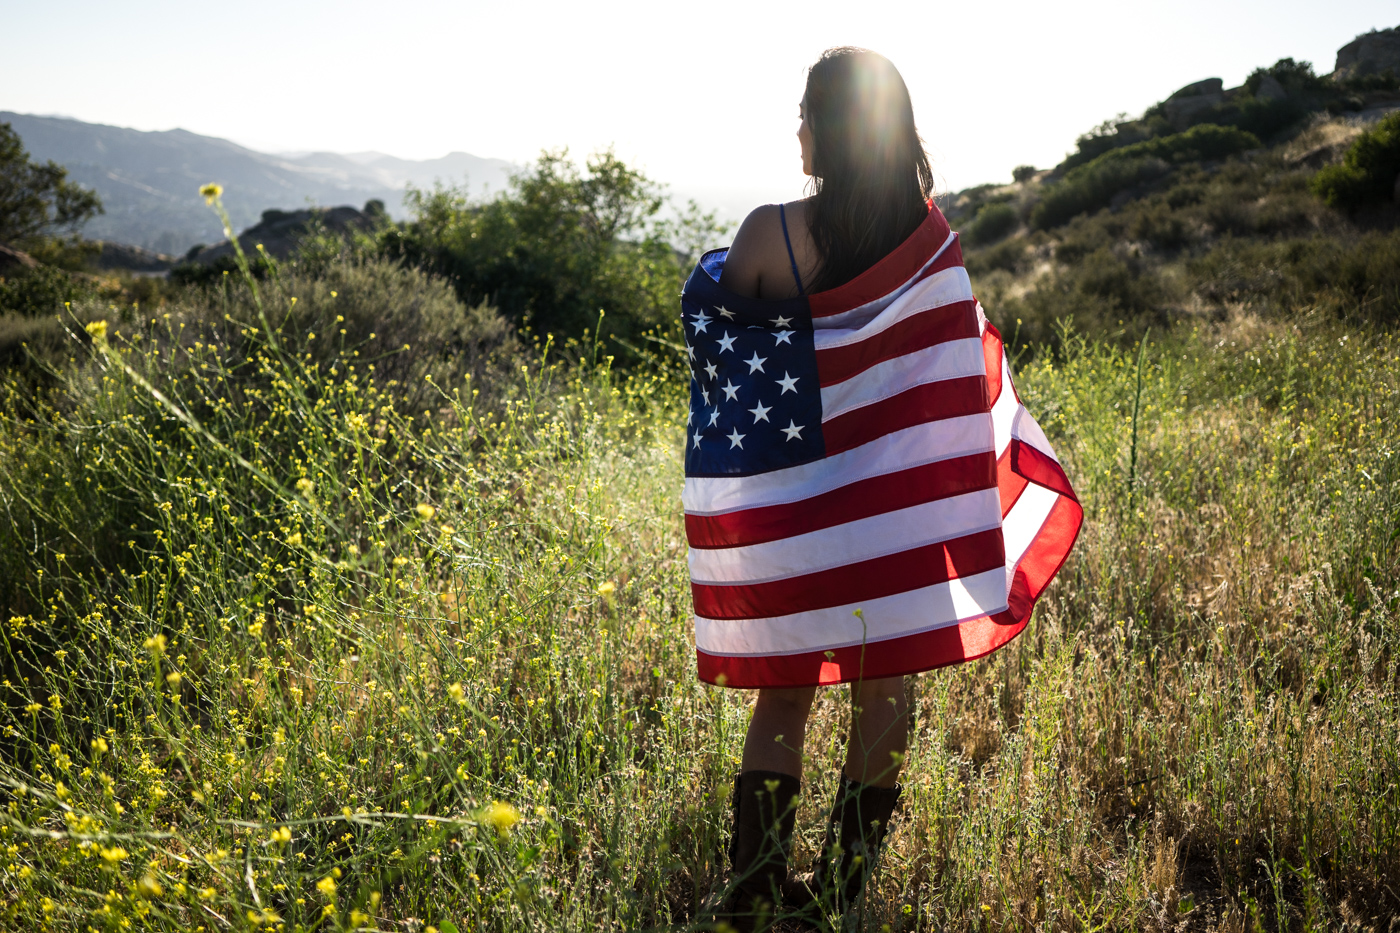 American woman with flag portrait in grassy mountain landscape at sunset